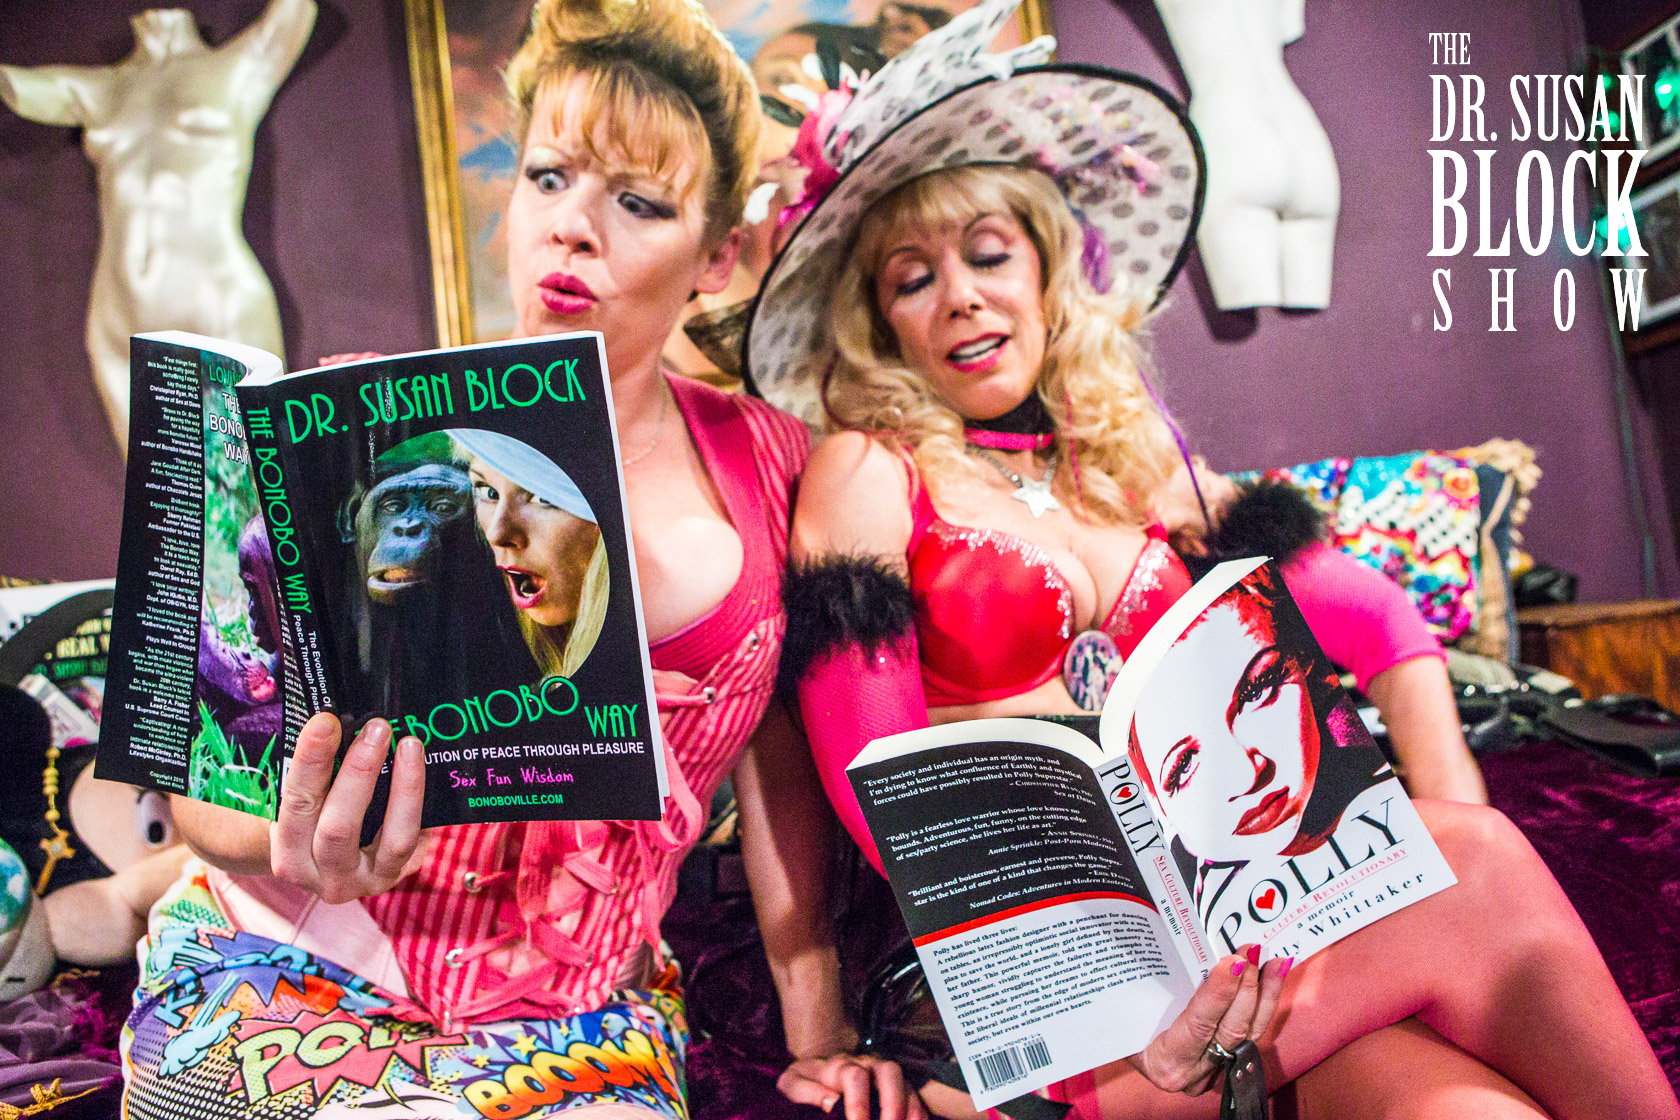 Heavy Reading: Polly Superstar & Dr. Suzy. Photo: JuxLii